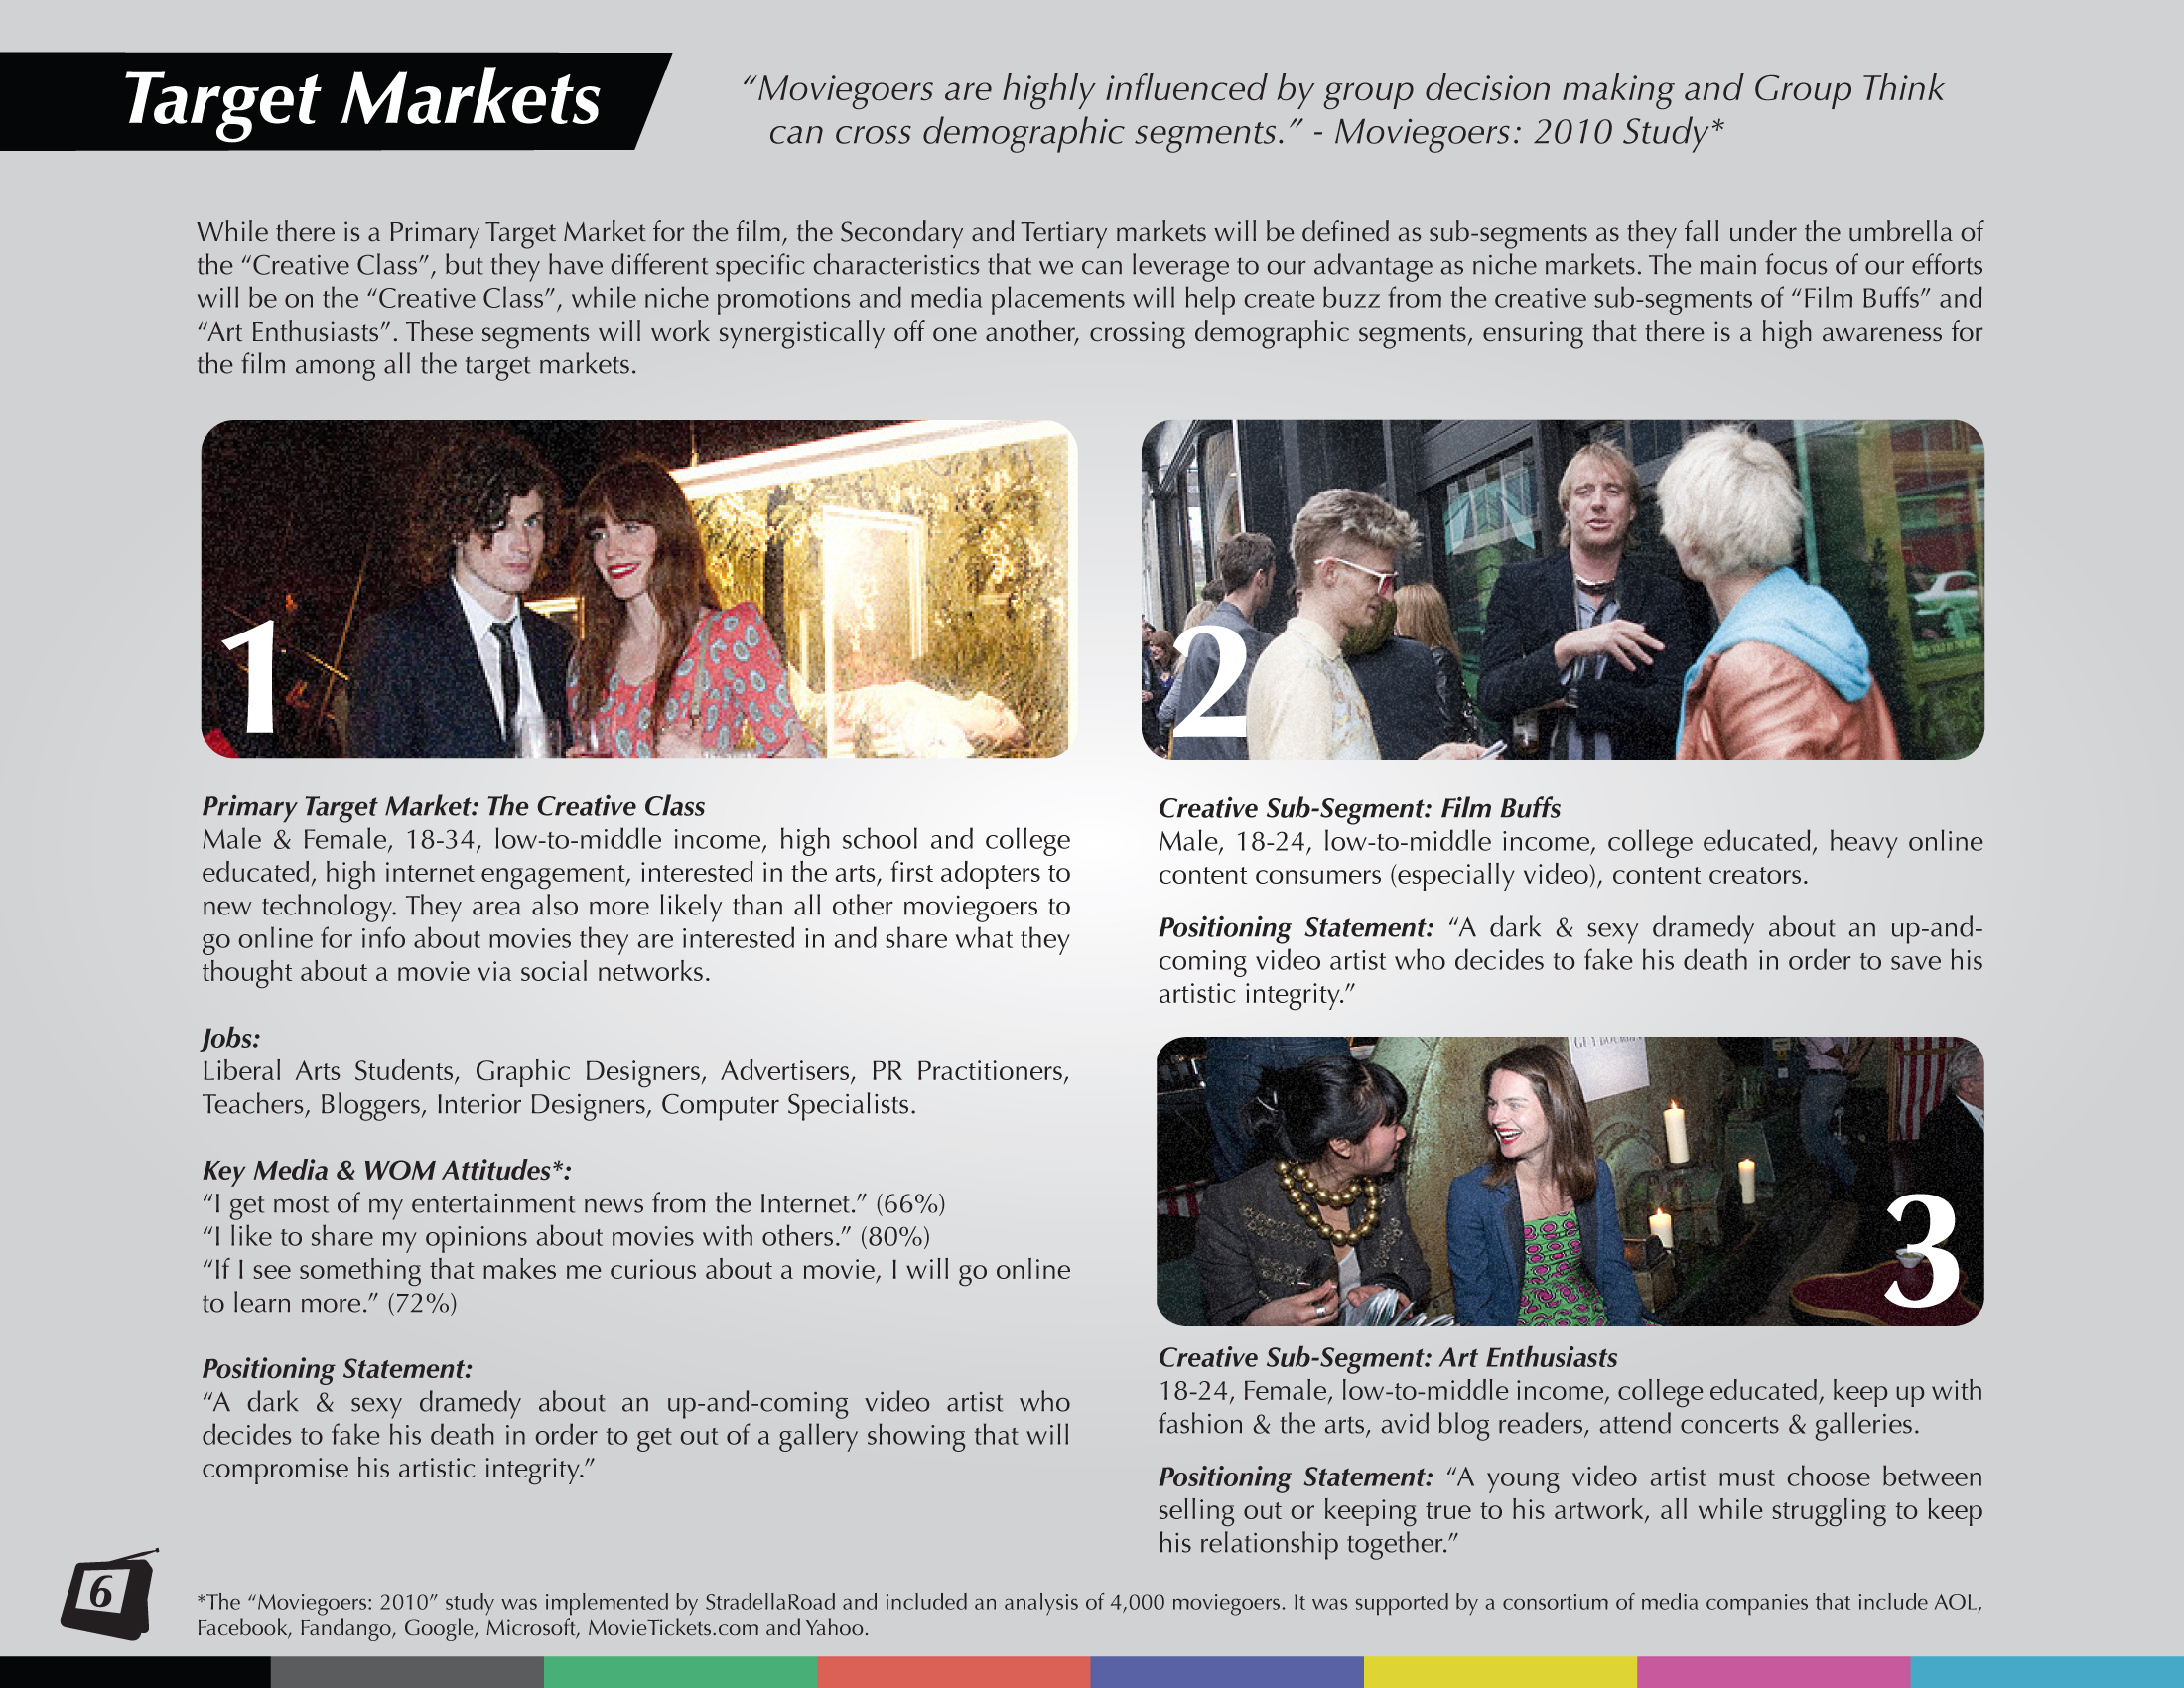 Sample Page: Target Markets